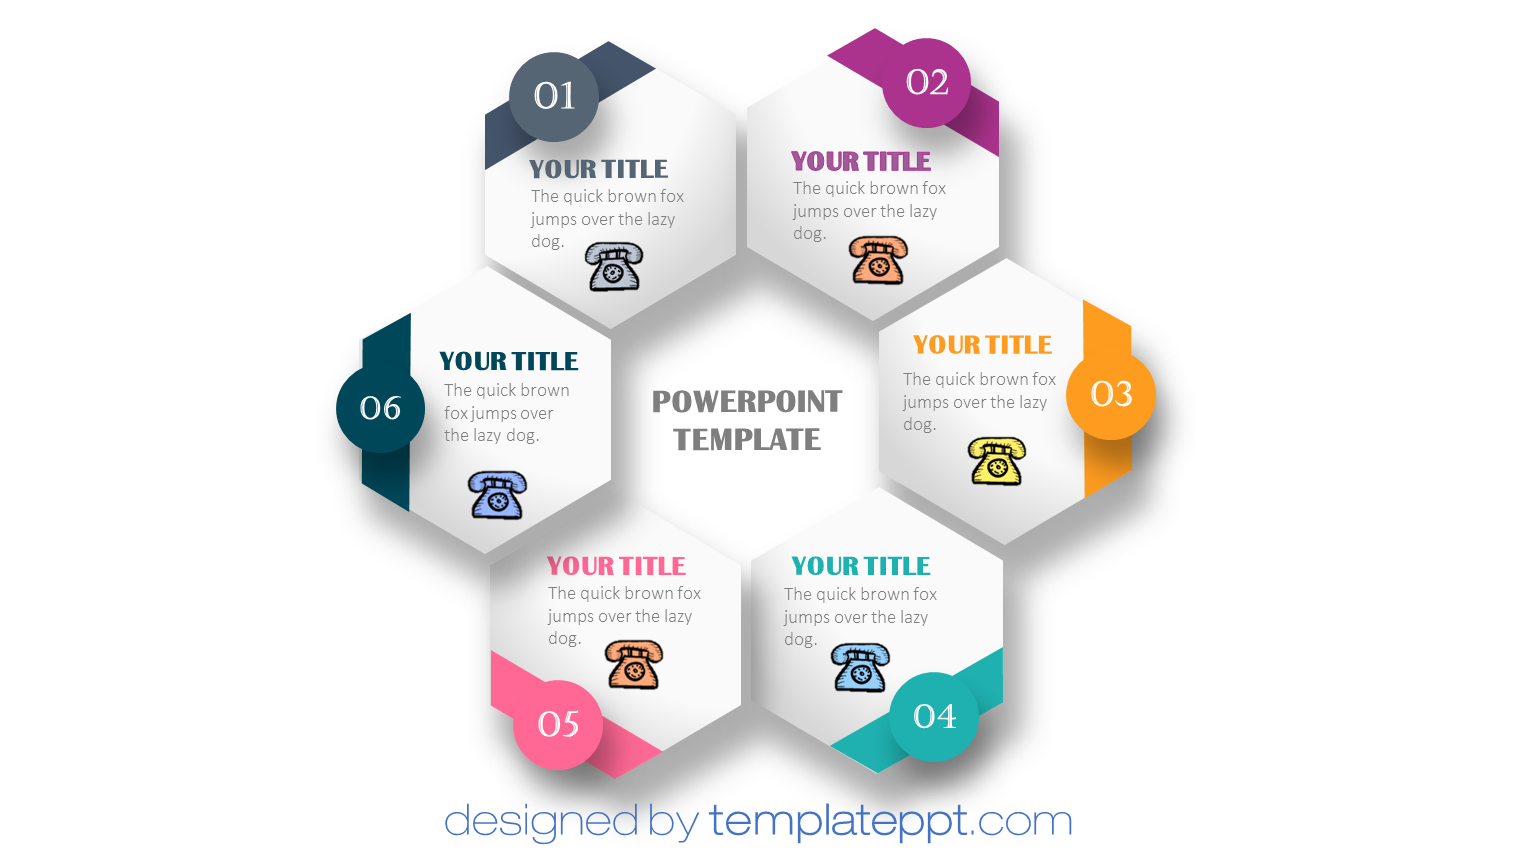 Microsoft Powerpoint Infographic Templates Free Download